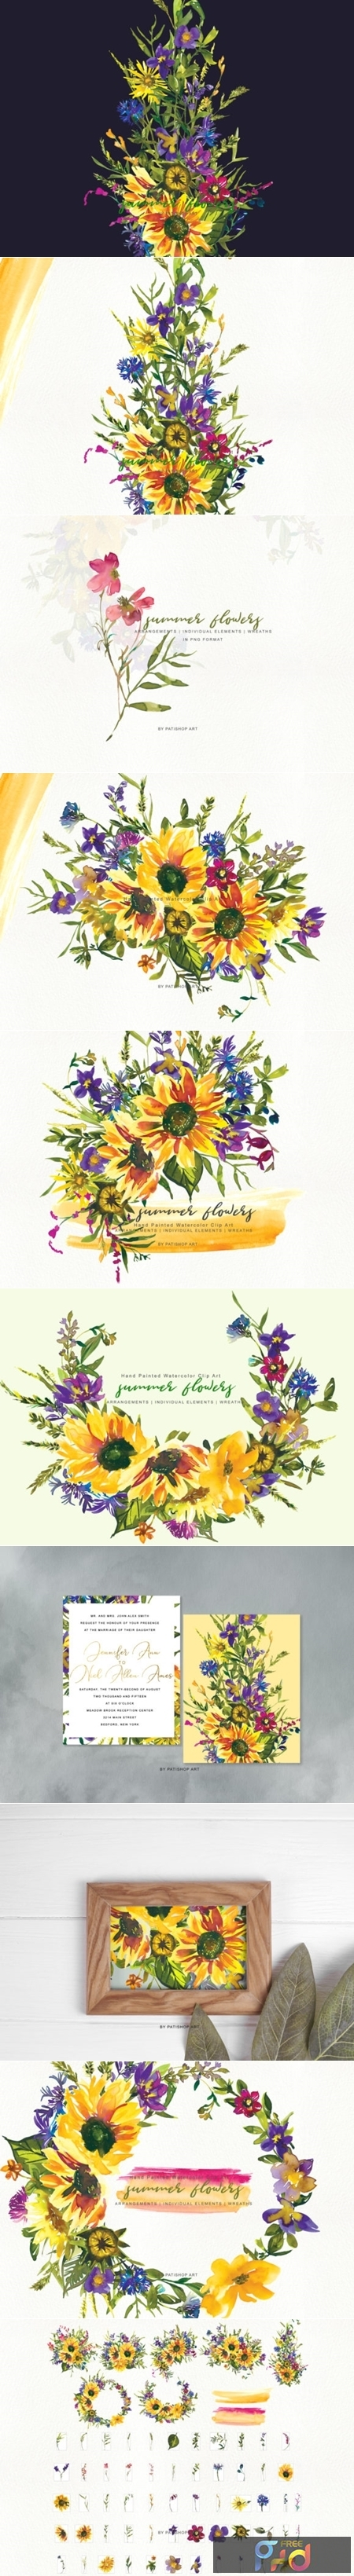 Watercolor Sunflower Wildflower Clipart 1505794 1